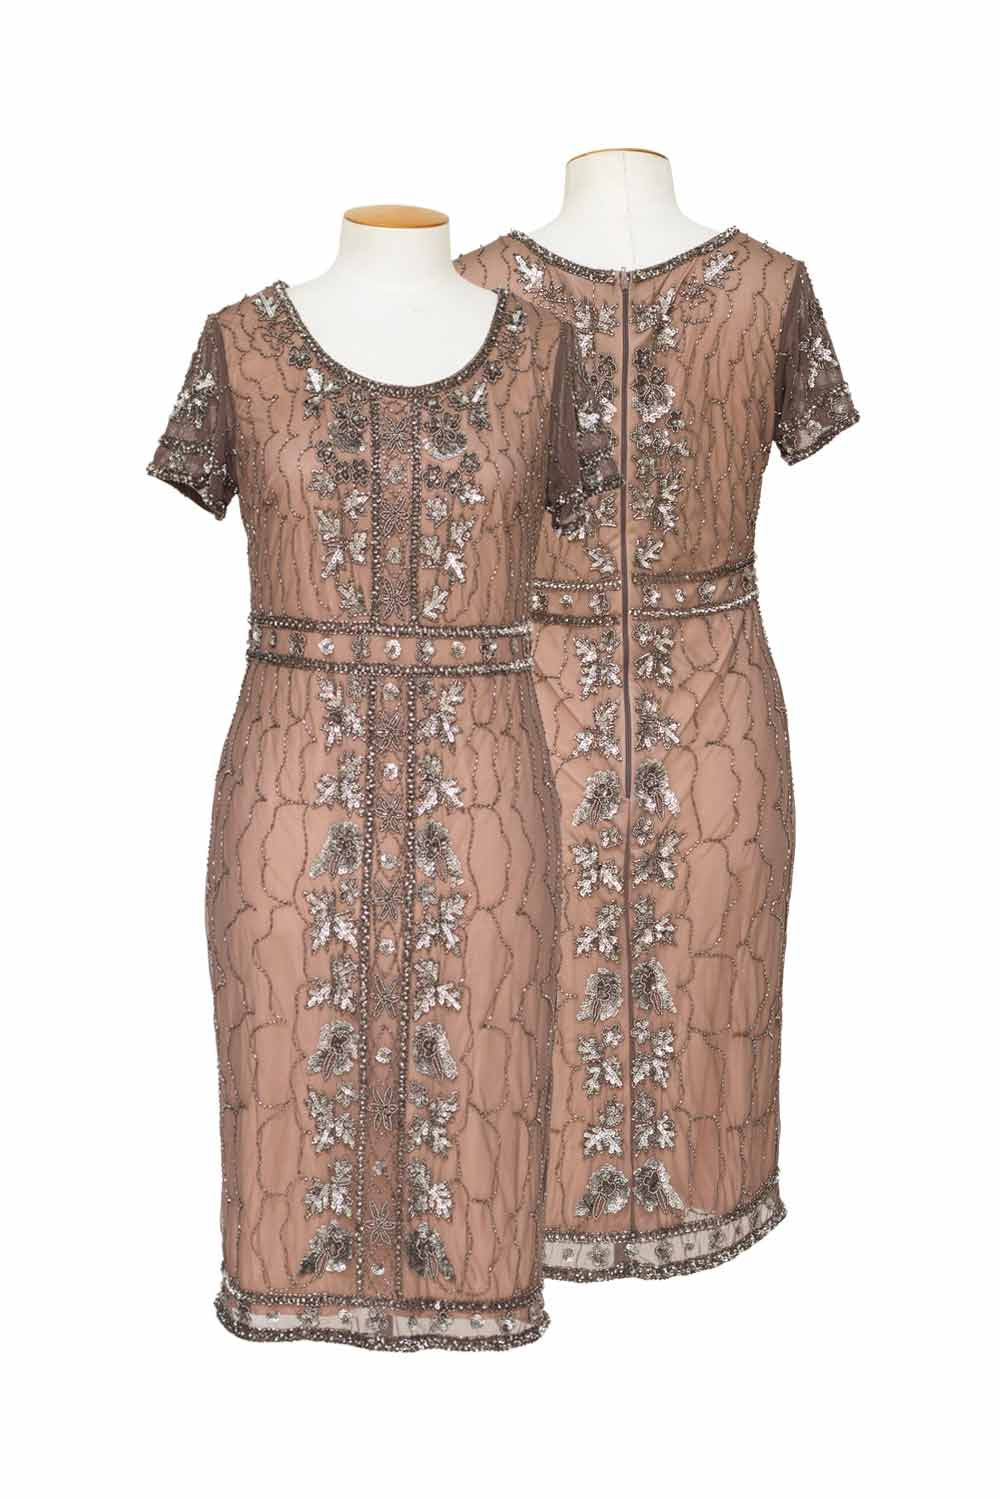 layla-jones-jesse-harper-beaded-dress